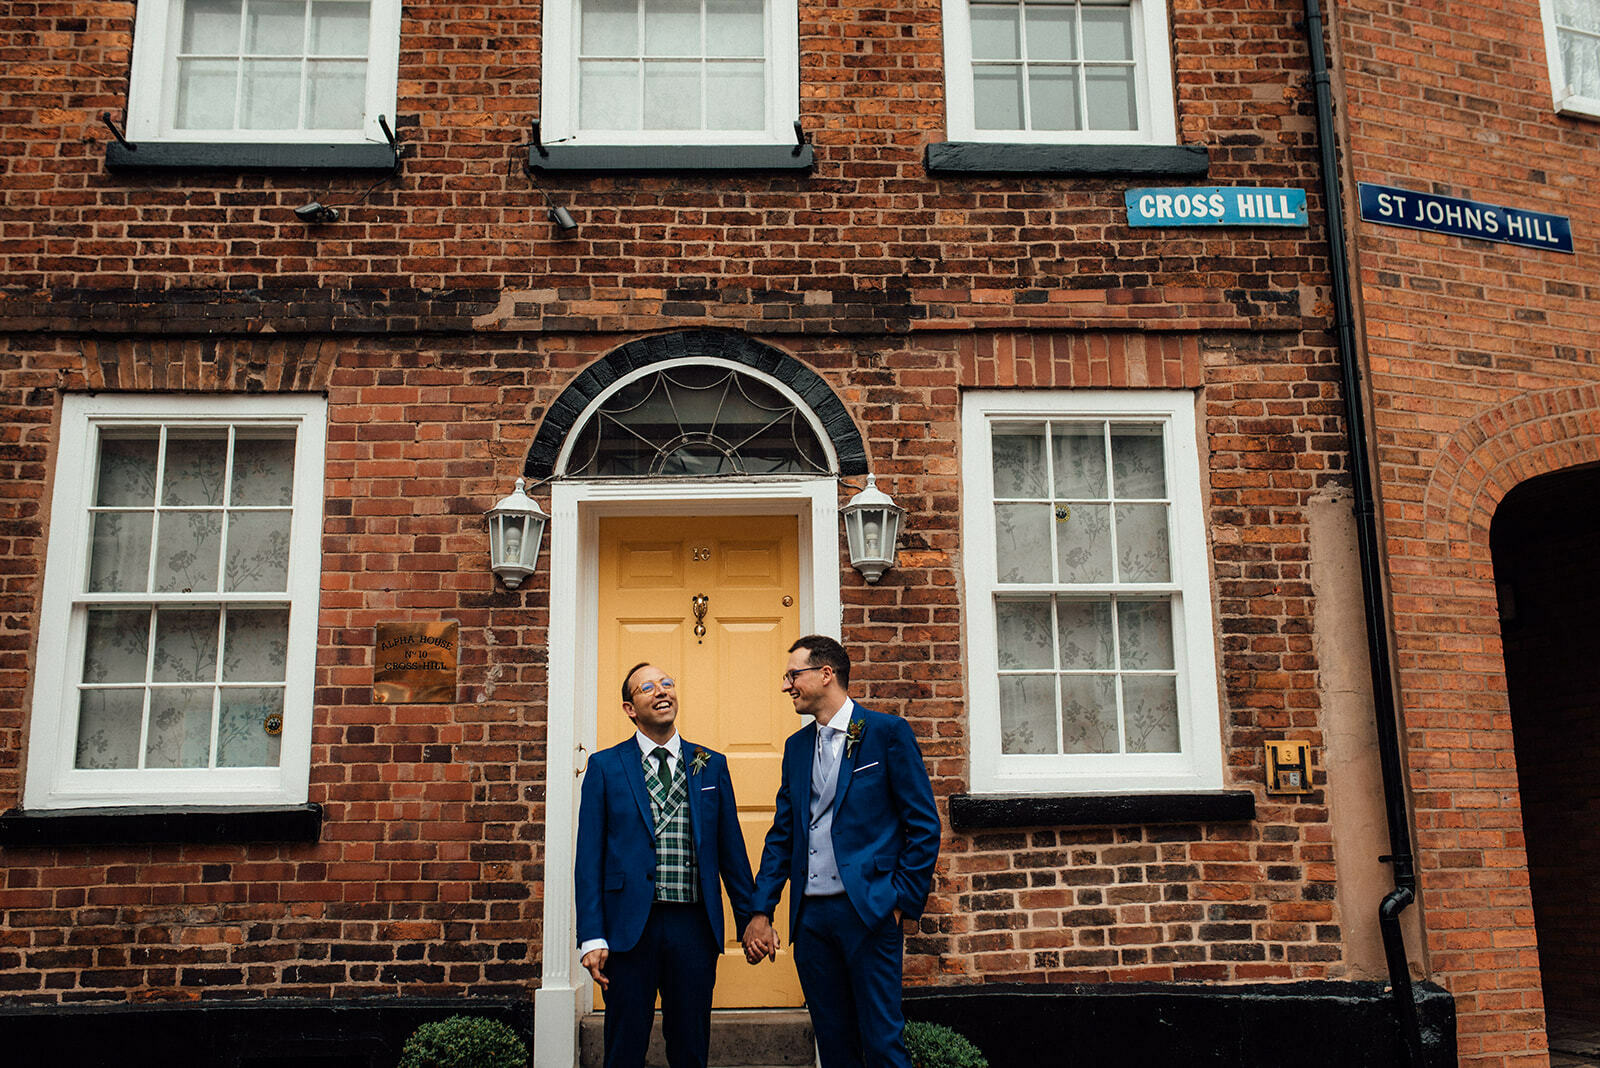 Newlywed grooms hold hands and smile in front of a yellow door in Shrewsbury